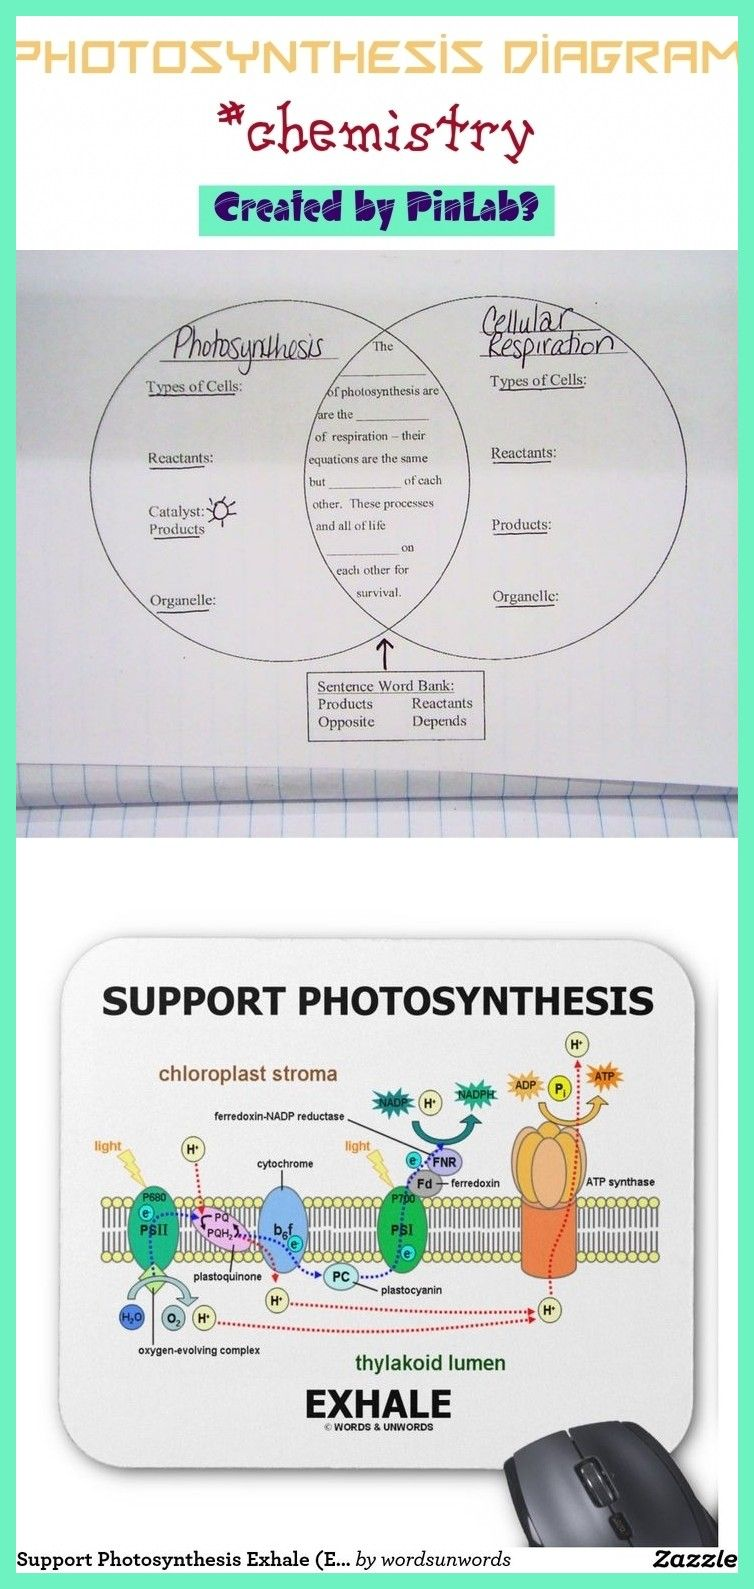 photosynthesis diagram in 2020 Photosynthesis